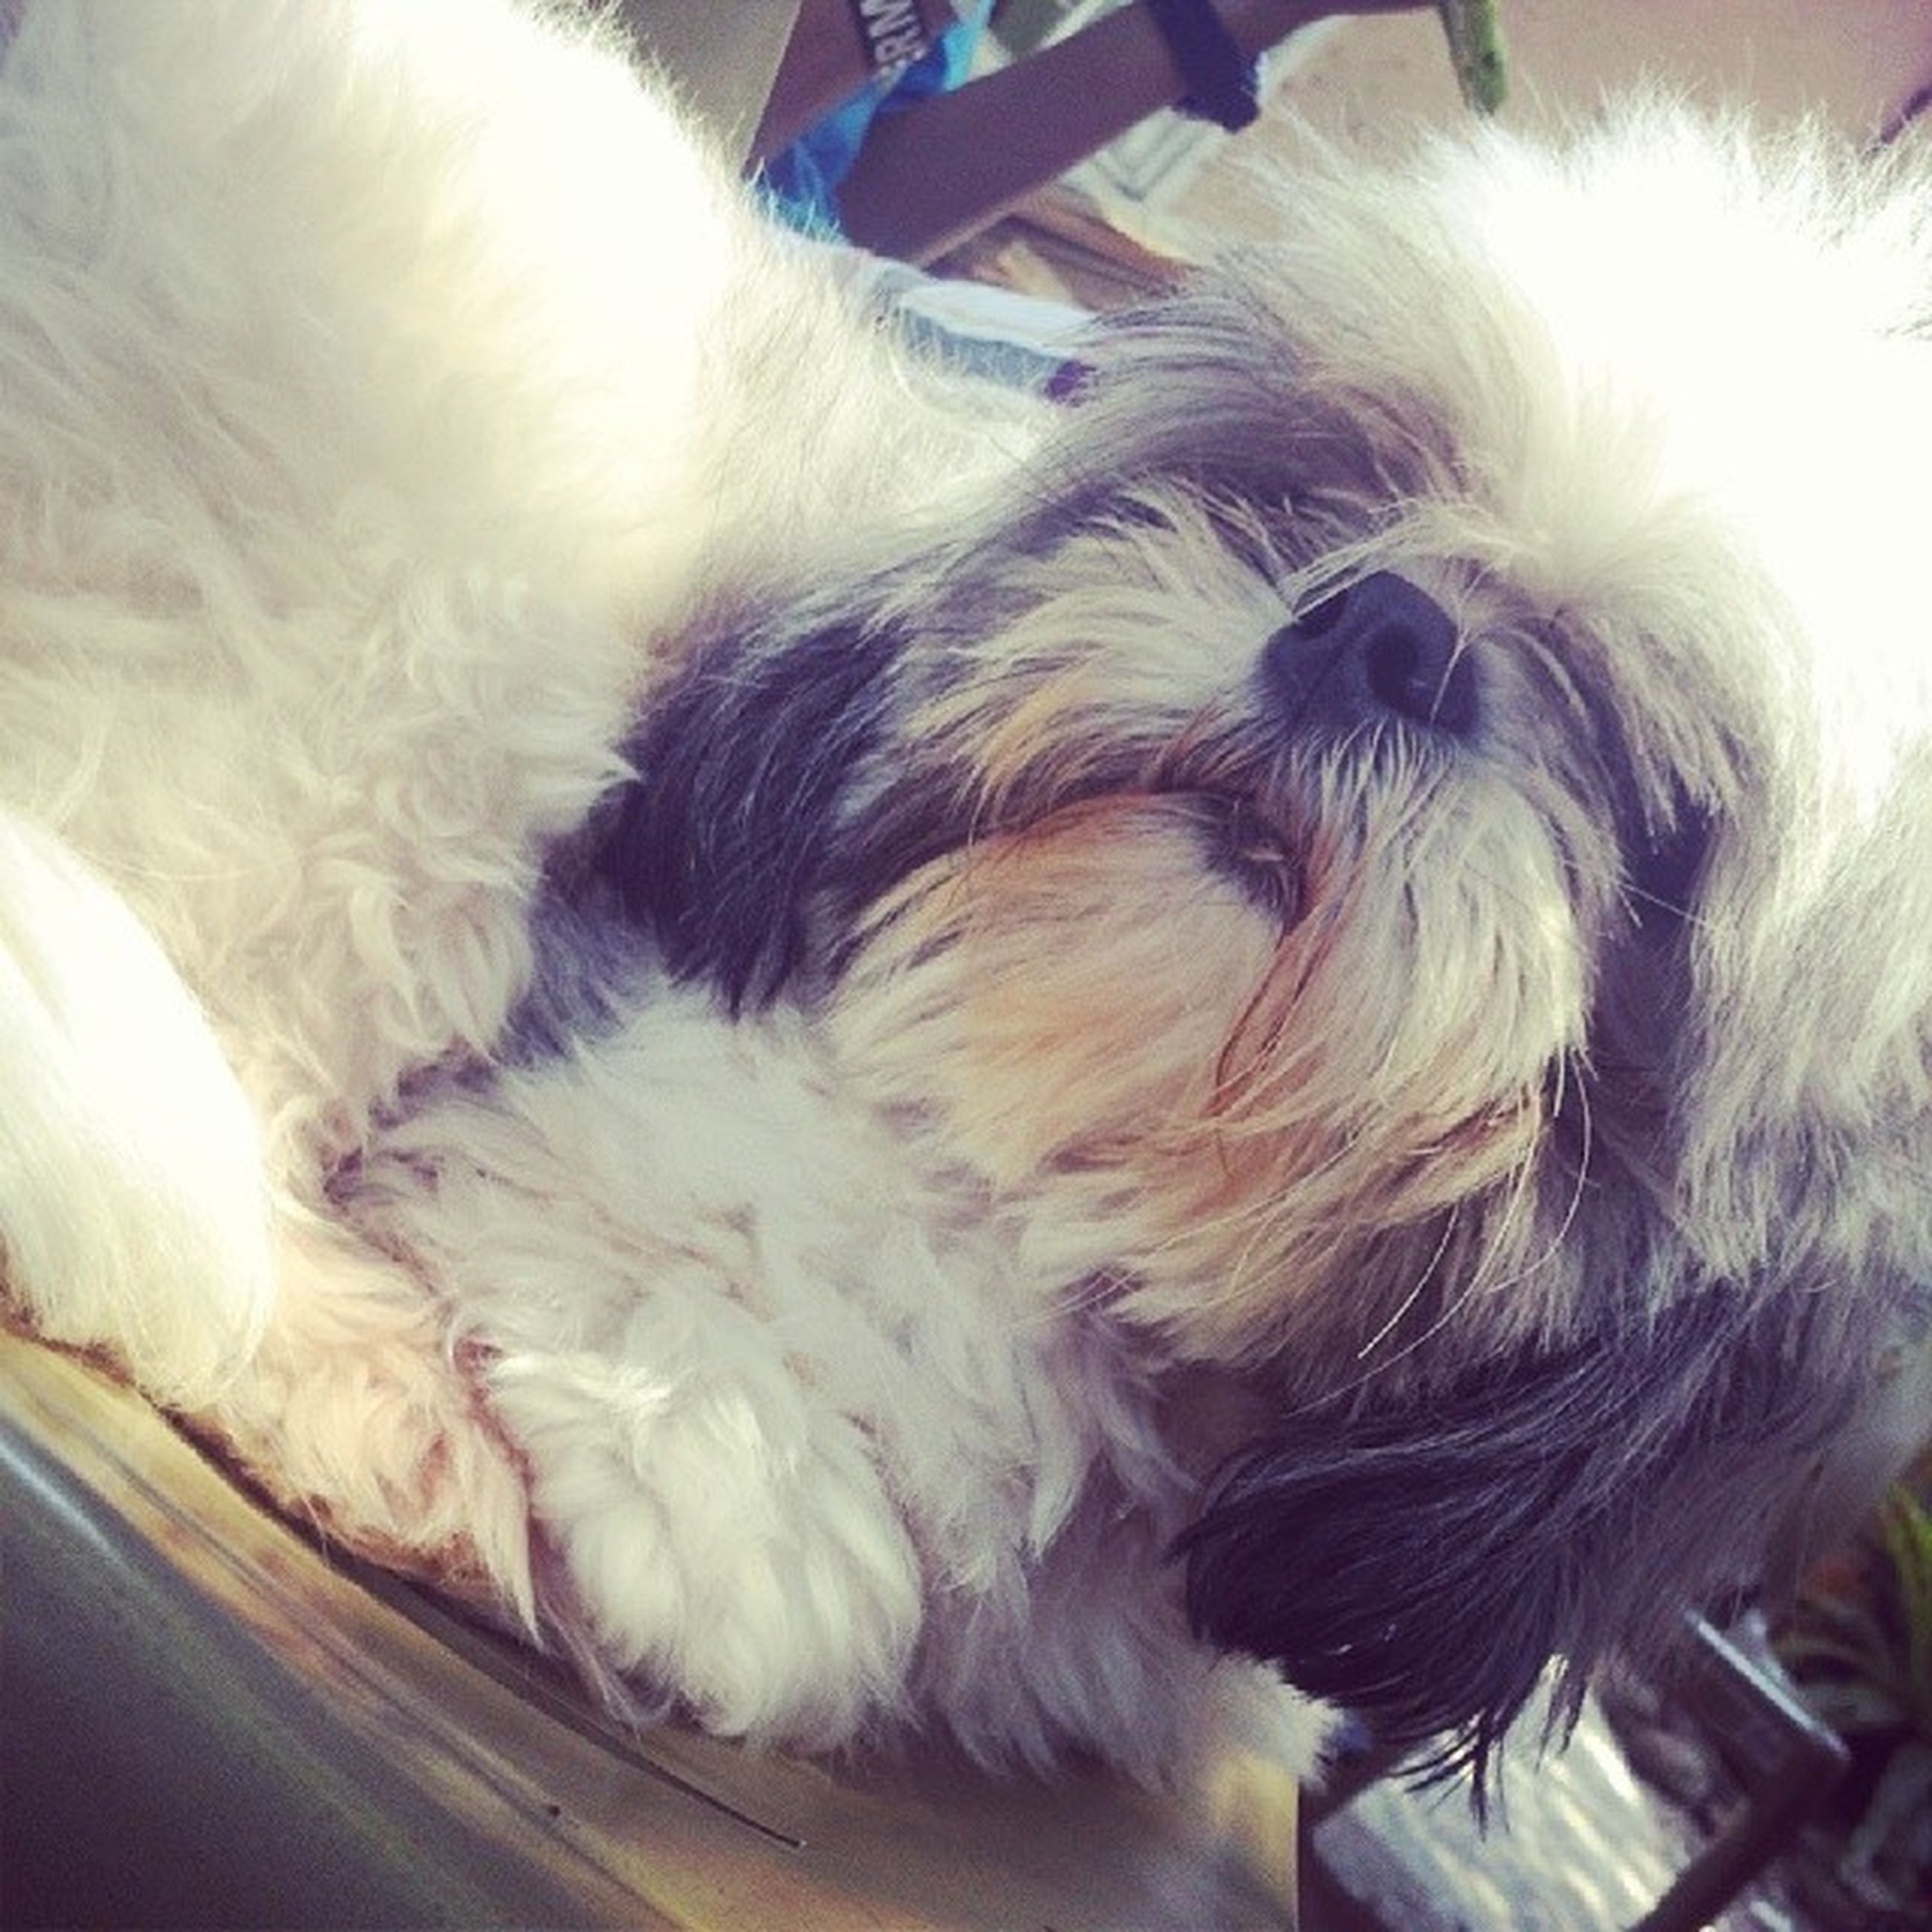 pets, domestic animals, indoors, dog, mammal, one animal, animal themes, relaxation, sleeping, high angle view, close-up, lying down, home interior, resting, lifestyles, animal hair, sitting, person